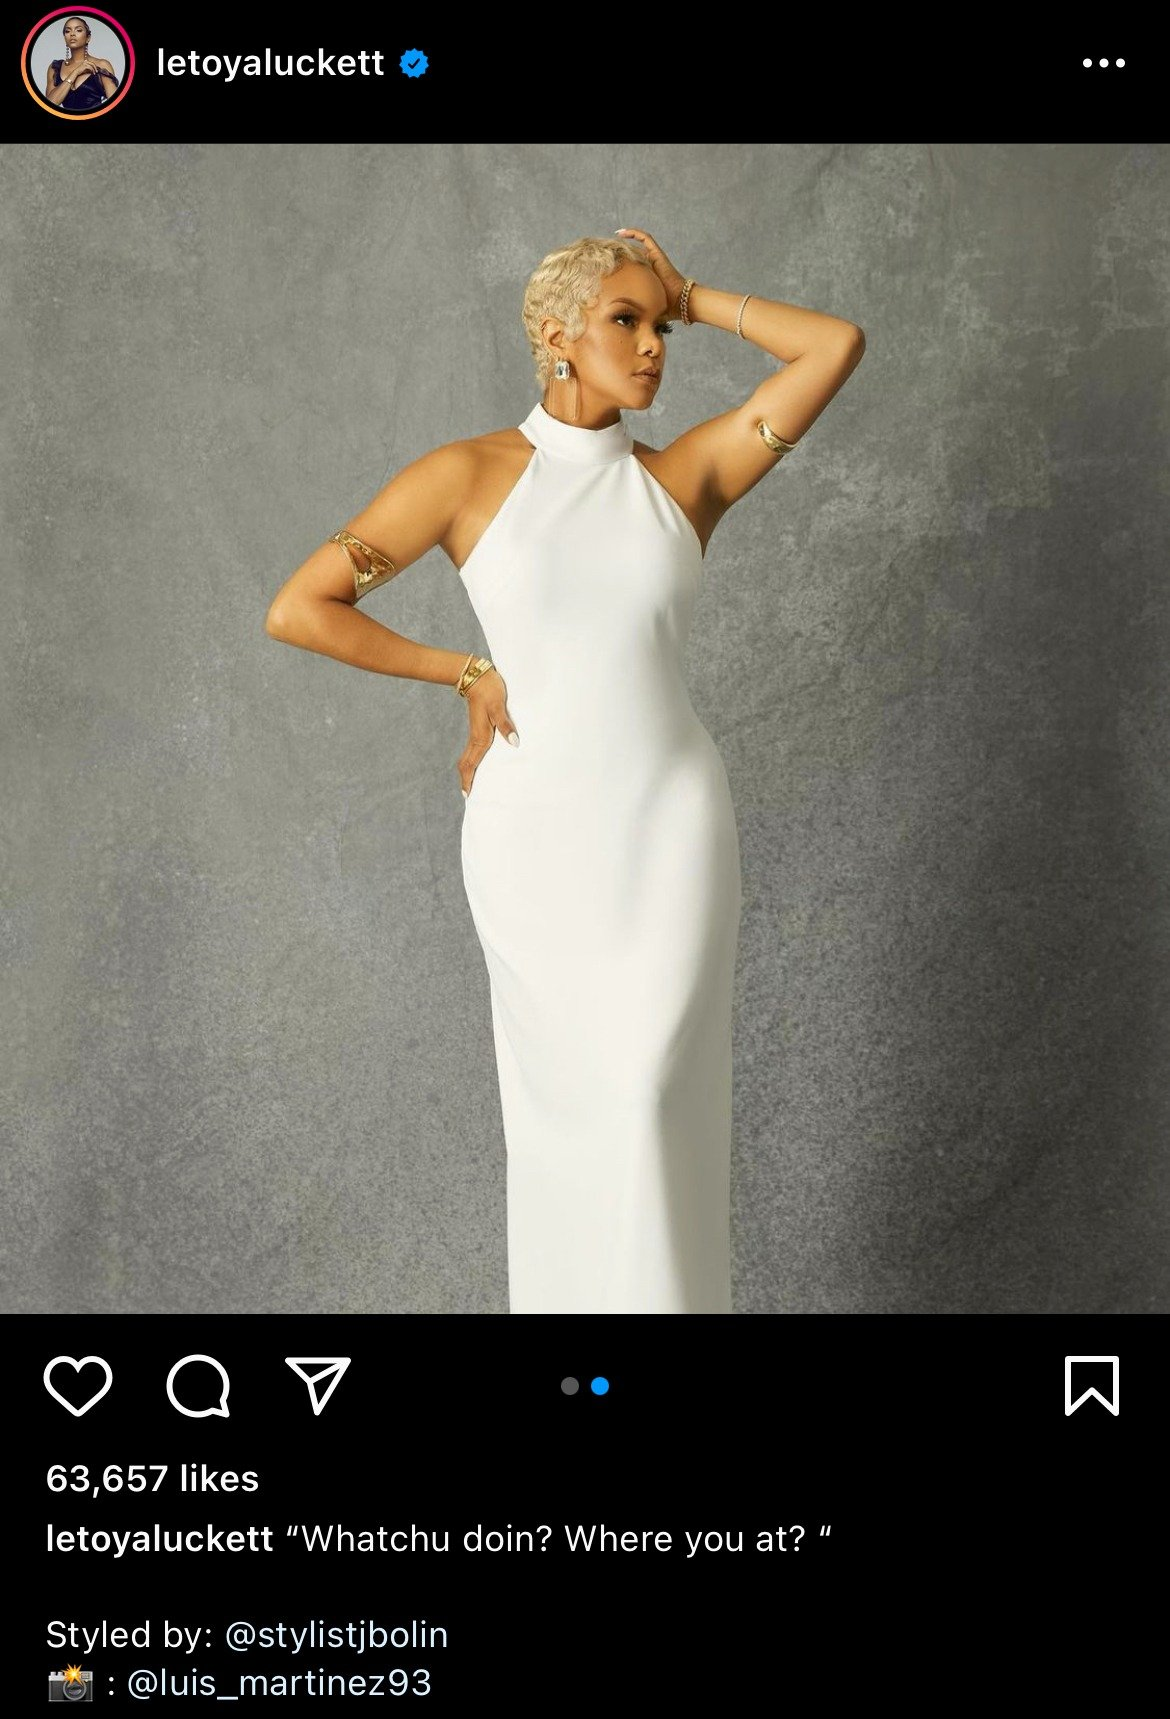 LeToya Luckett wearing a gorgeous white dress showing her curves and her new figure. | Photo: instagram.com/letoyaluckett